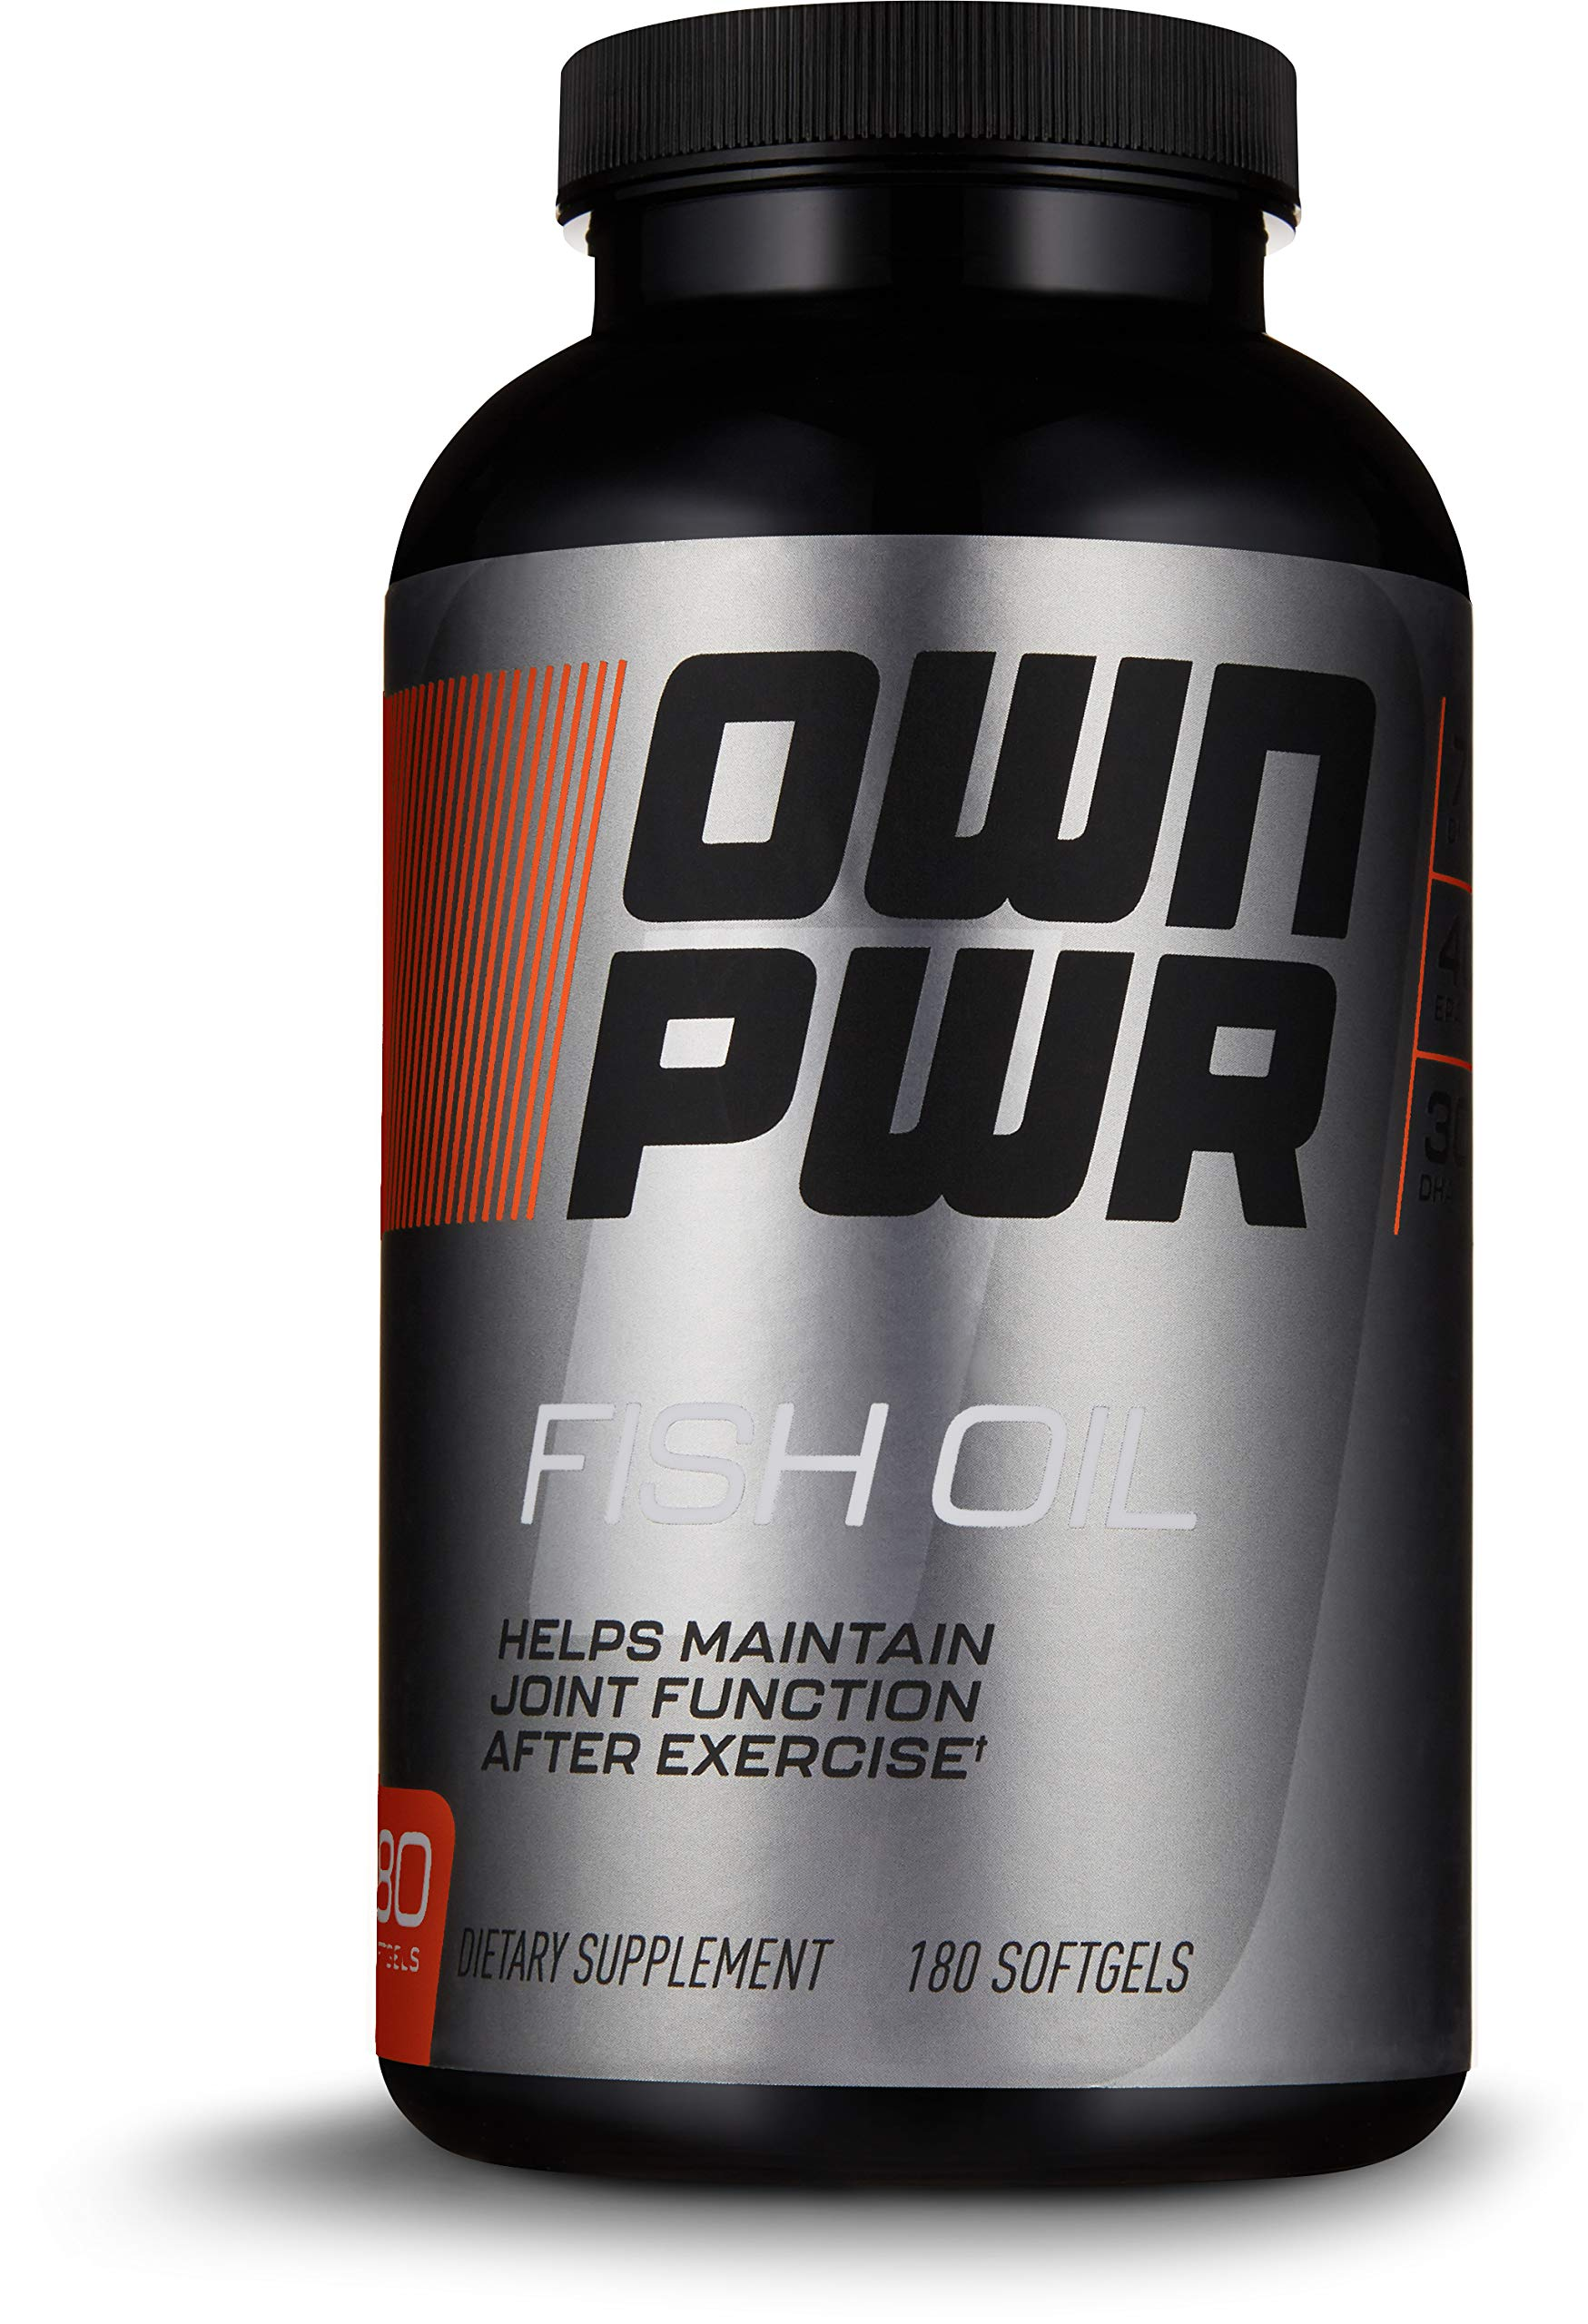 OWN PWR Fish Oil Supplement, 180 Softgels, Fish Oil: 1250MG, Omega-